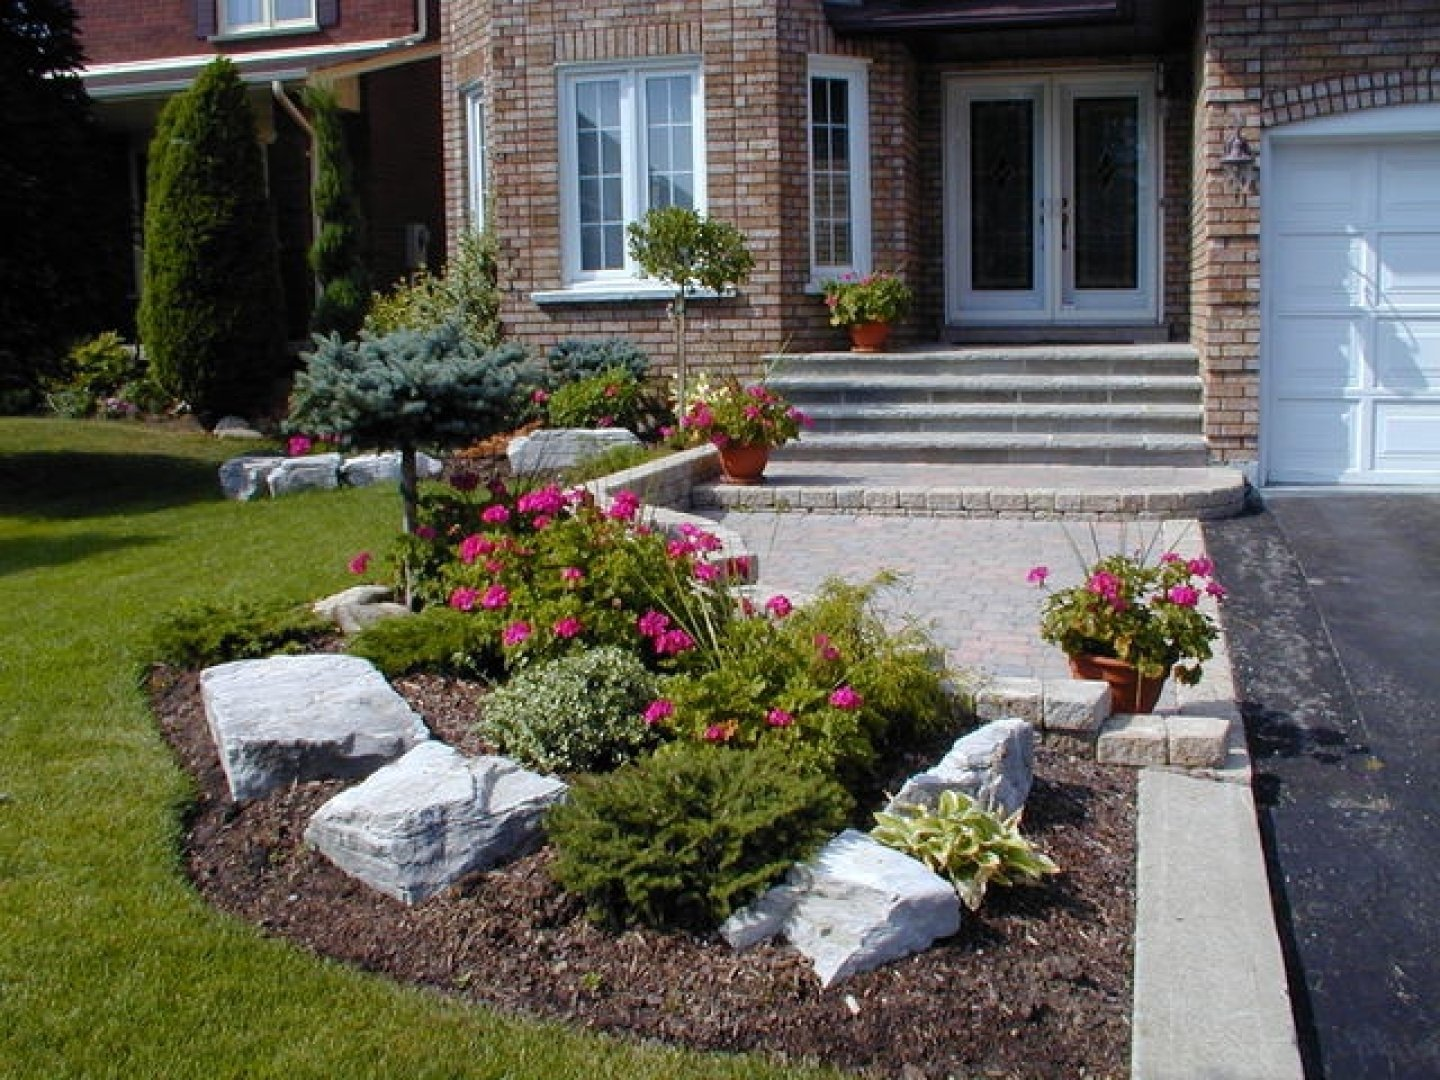 10 Stylish Small Front Yard Flower Bed Ideas front yard home front garden ideas yard small landscaping hgtv 2020